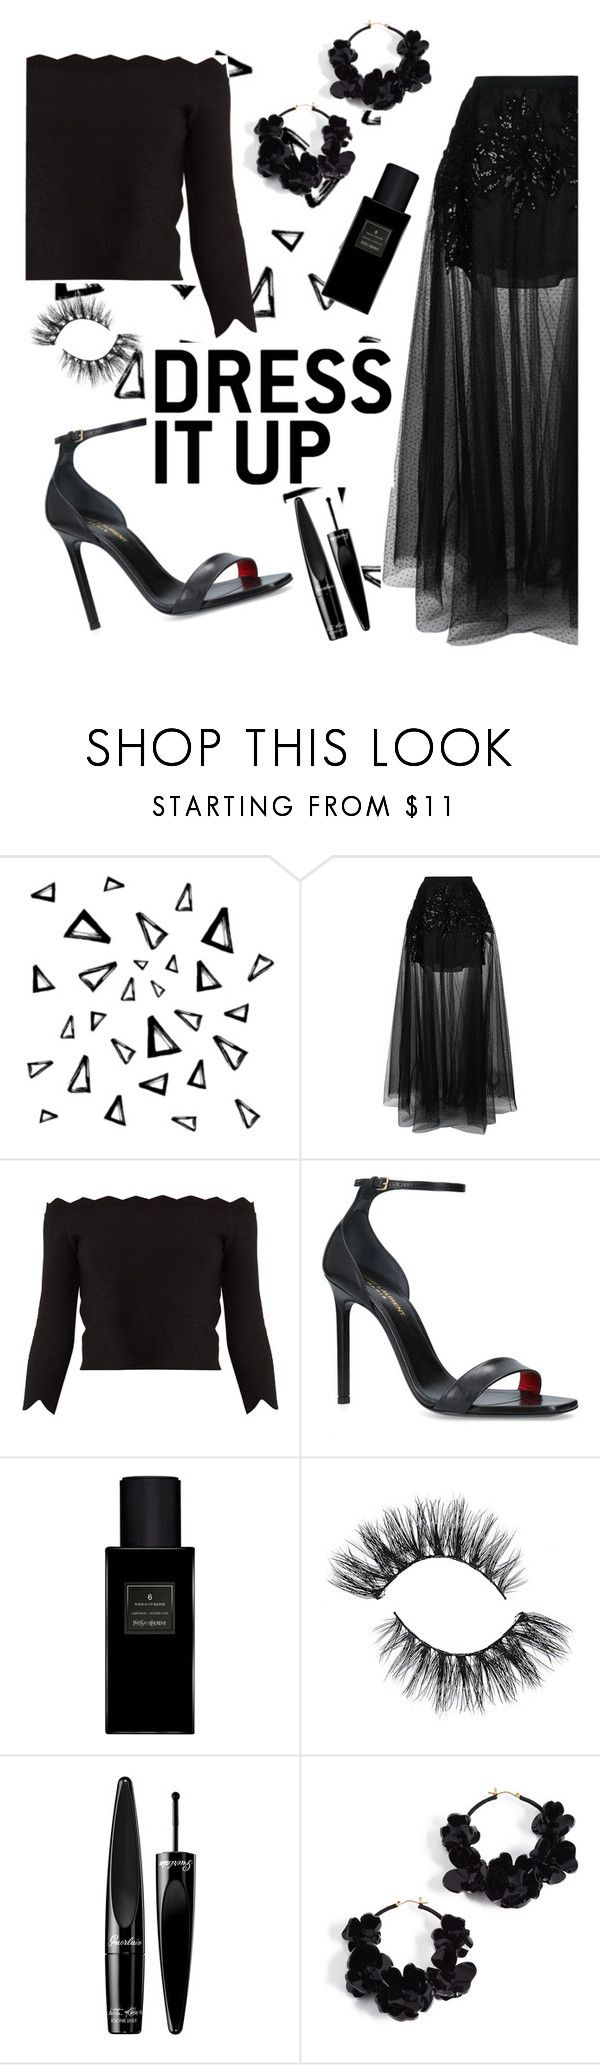 """""""Dress it up"""" by undercover-fangirl ❤ liked on Polyvore featuring Nika, Elie Saab, Alexander McQueen, Yves Saint Laurent, Guerlain and Oscar de la Renta"""